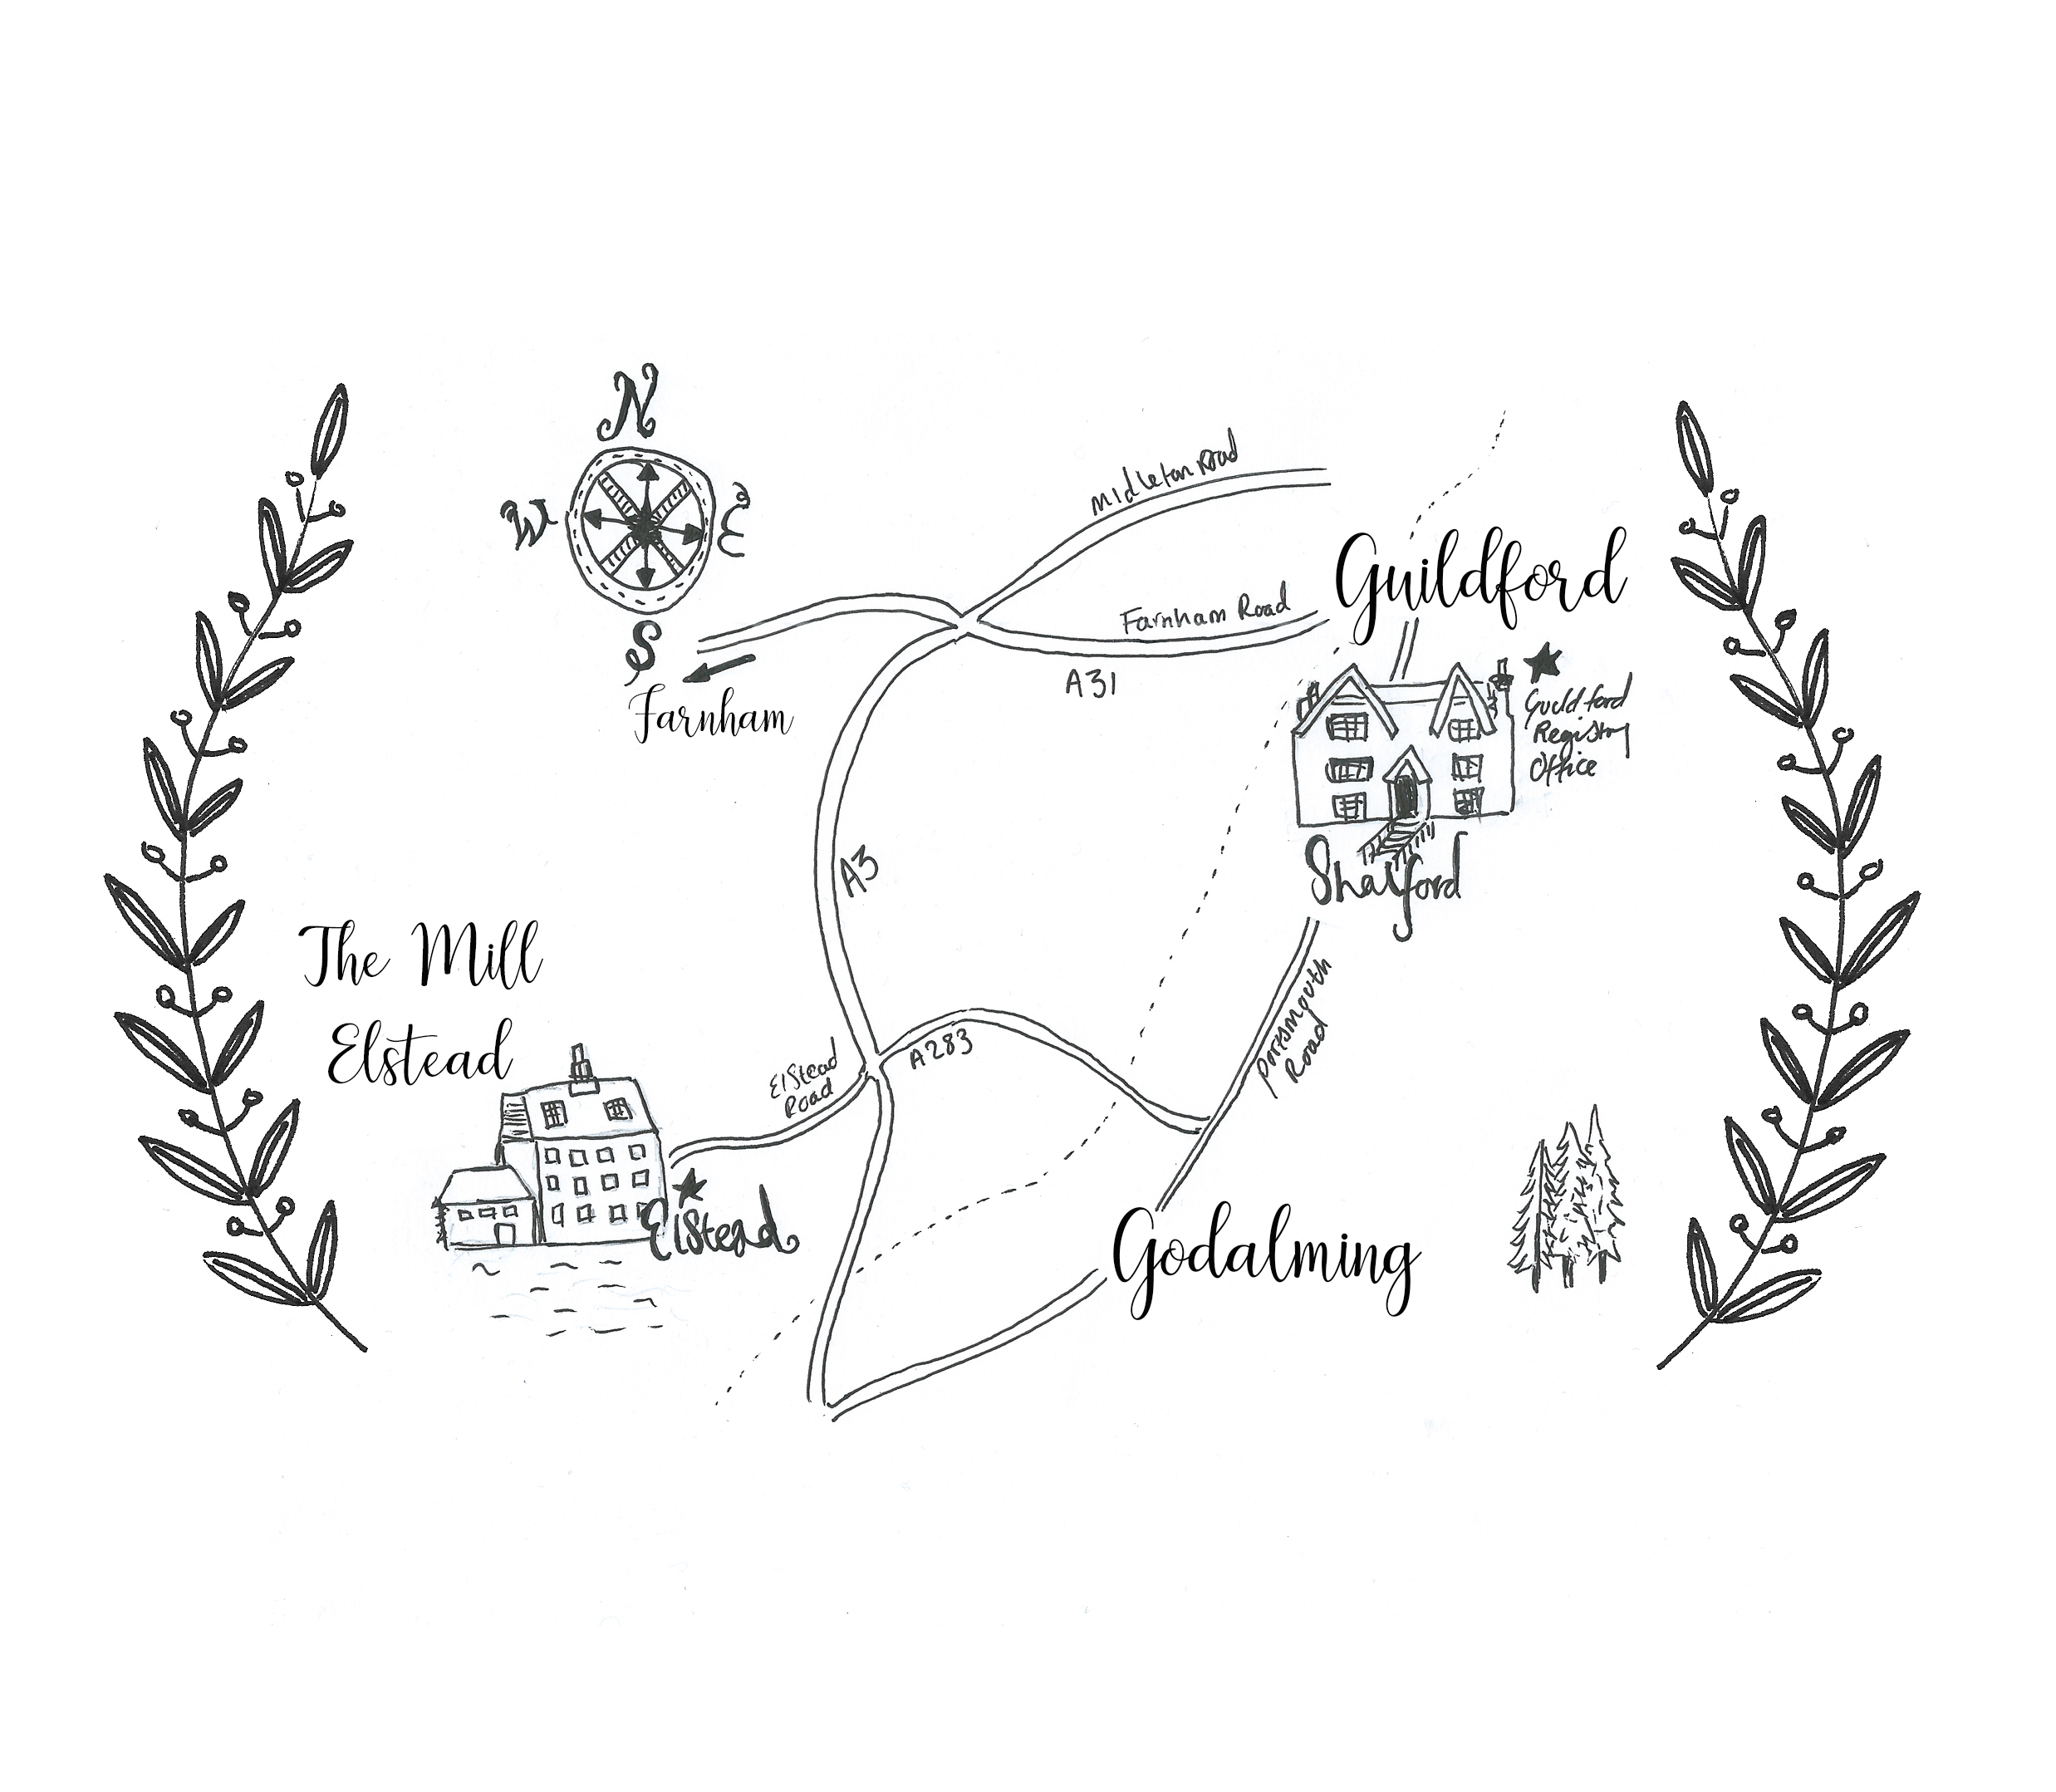 The Mill Elstead Wedding Map, Guildford Registry Office 2014.